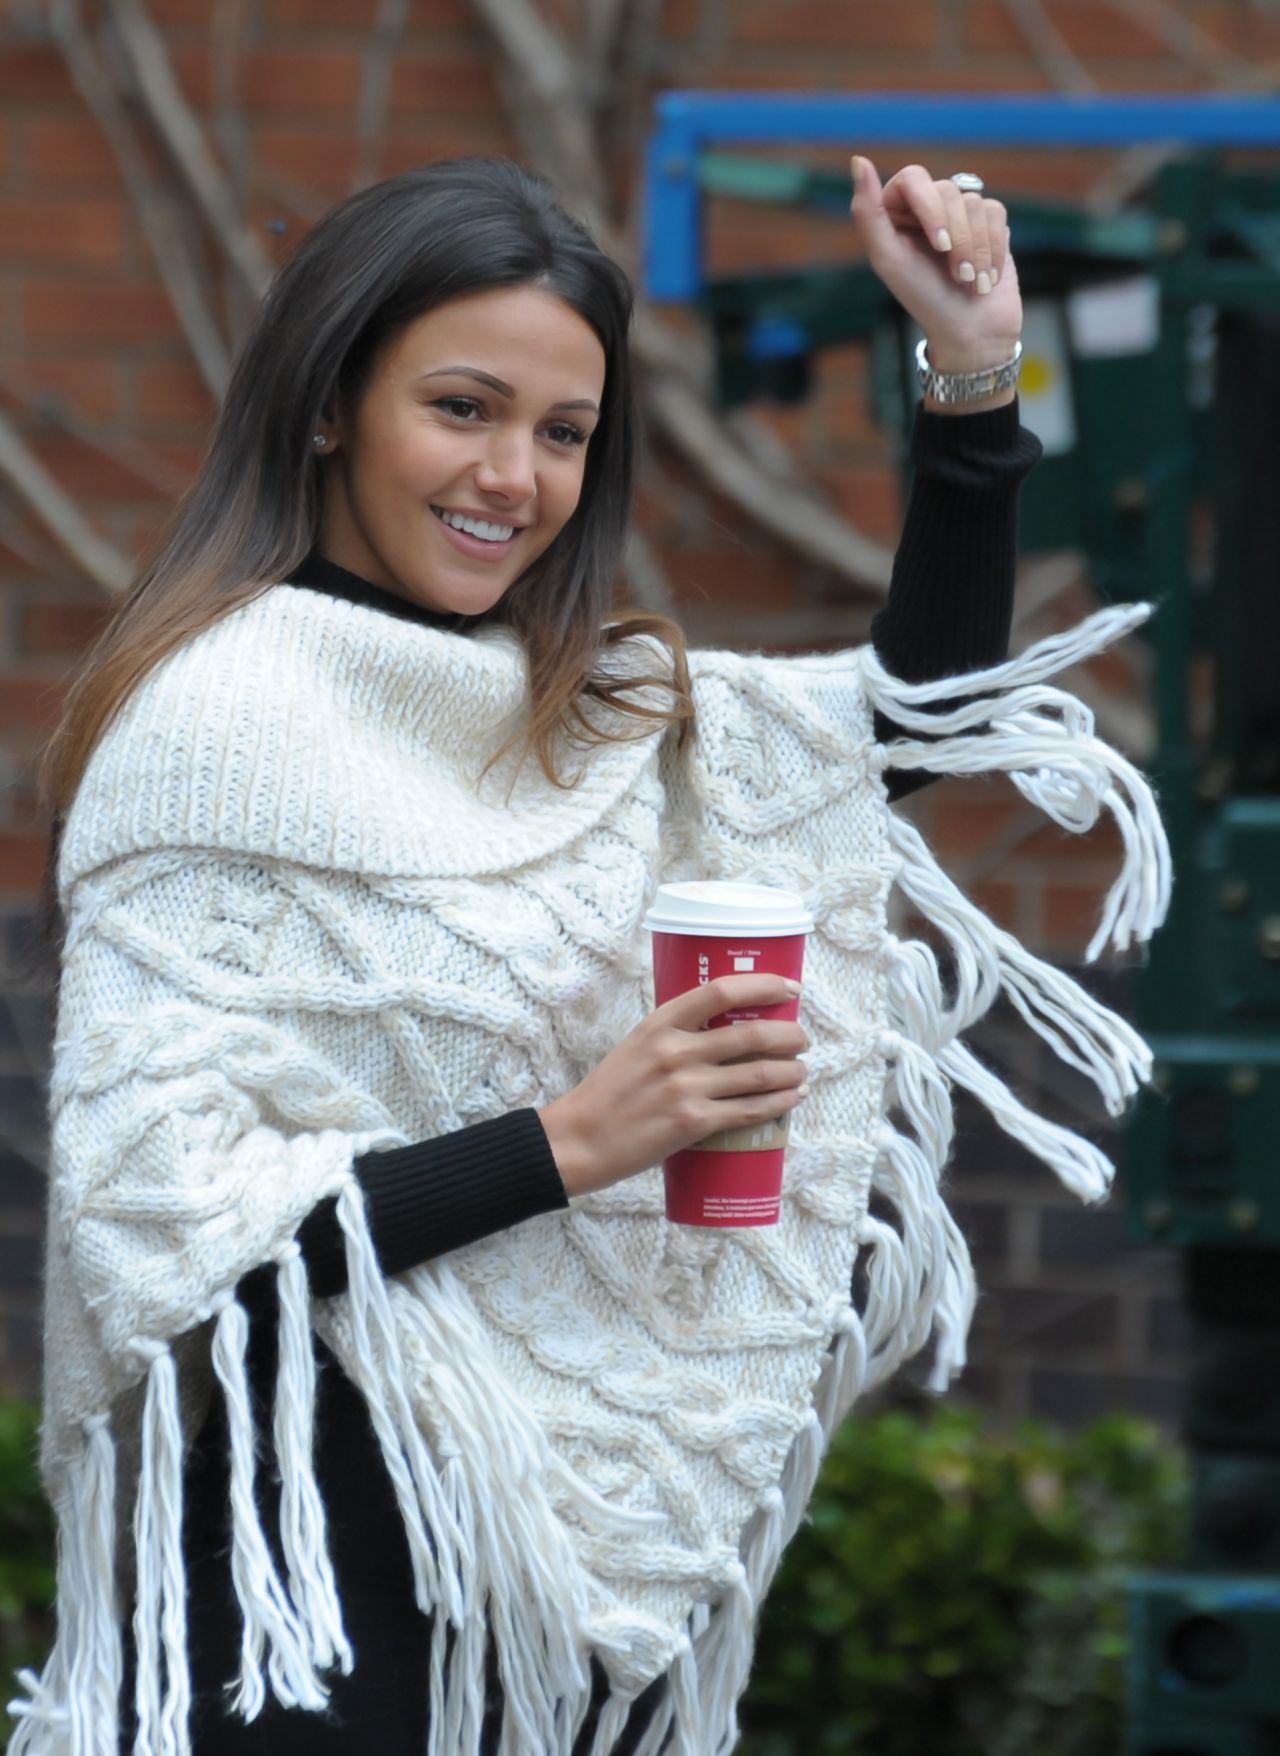 Michelle Keegan Style - at the Shopping Centre in Solihull - England, November 2014